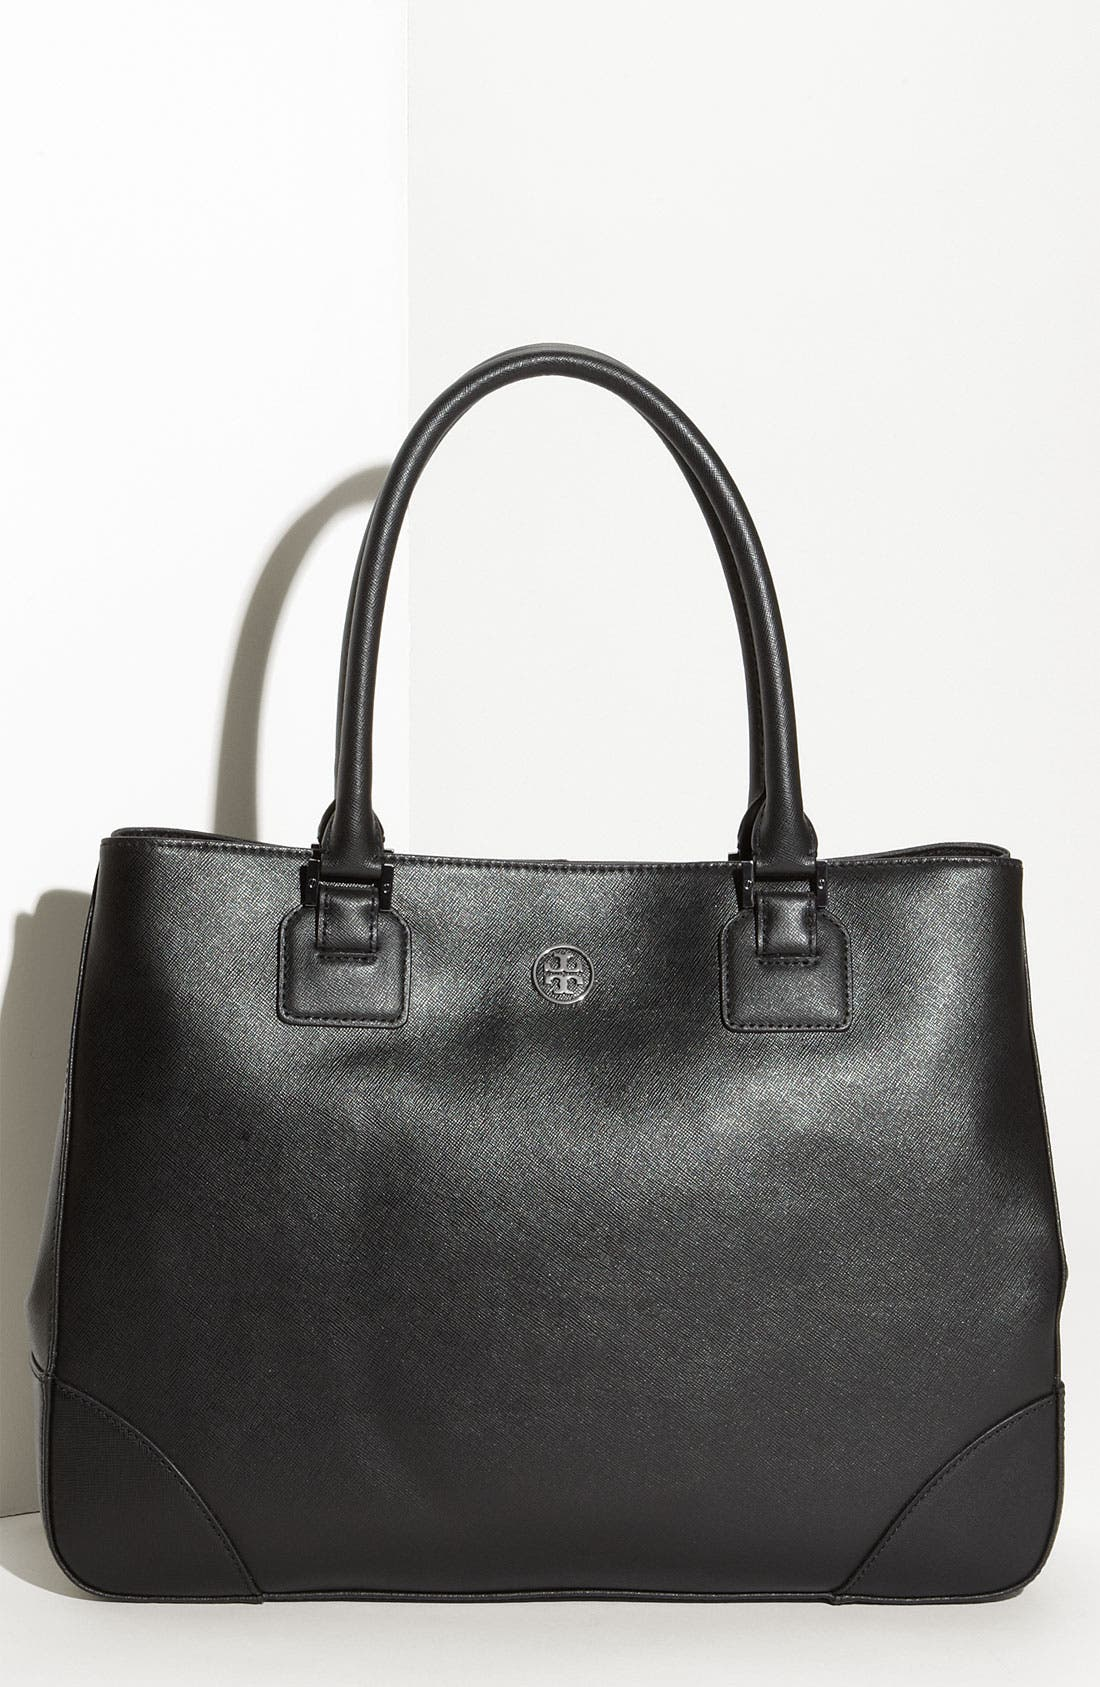 Alternate Image 1 Selected - Tory Burch 'Robinson' Saffiano Tote